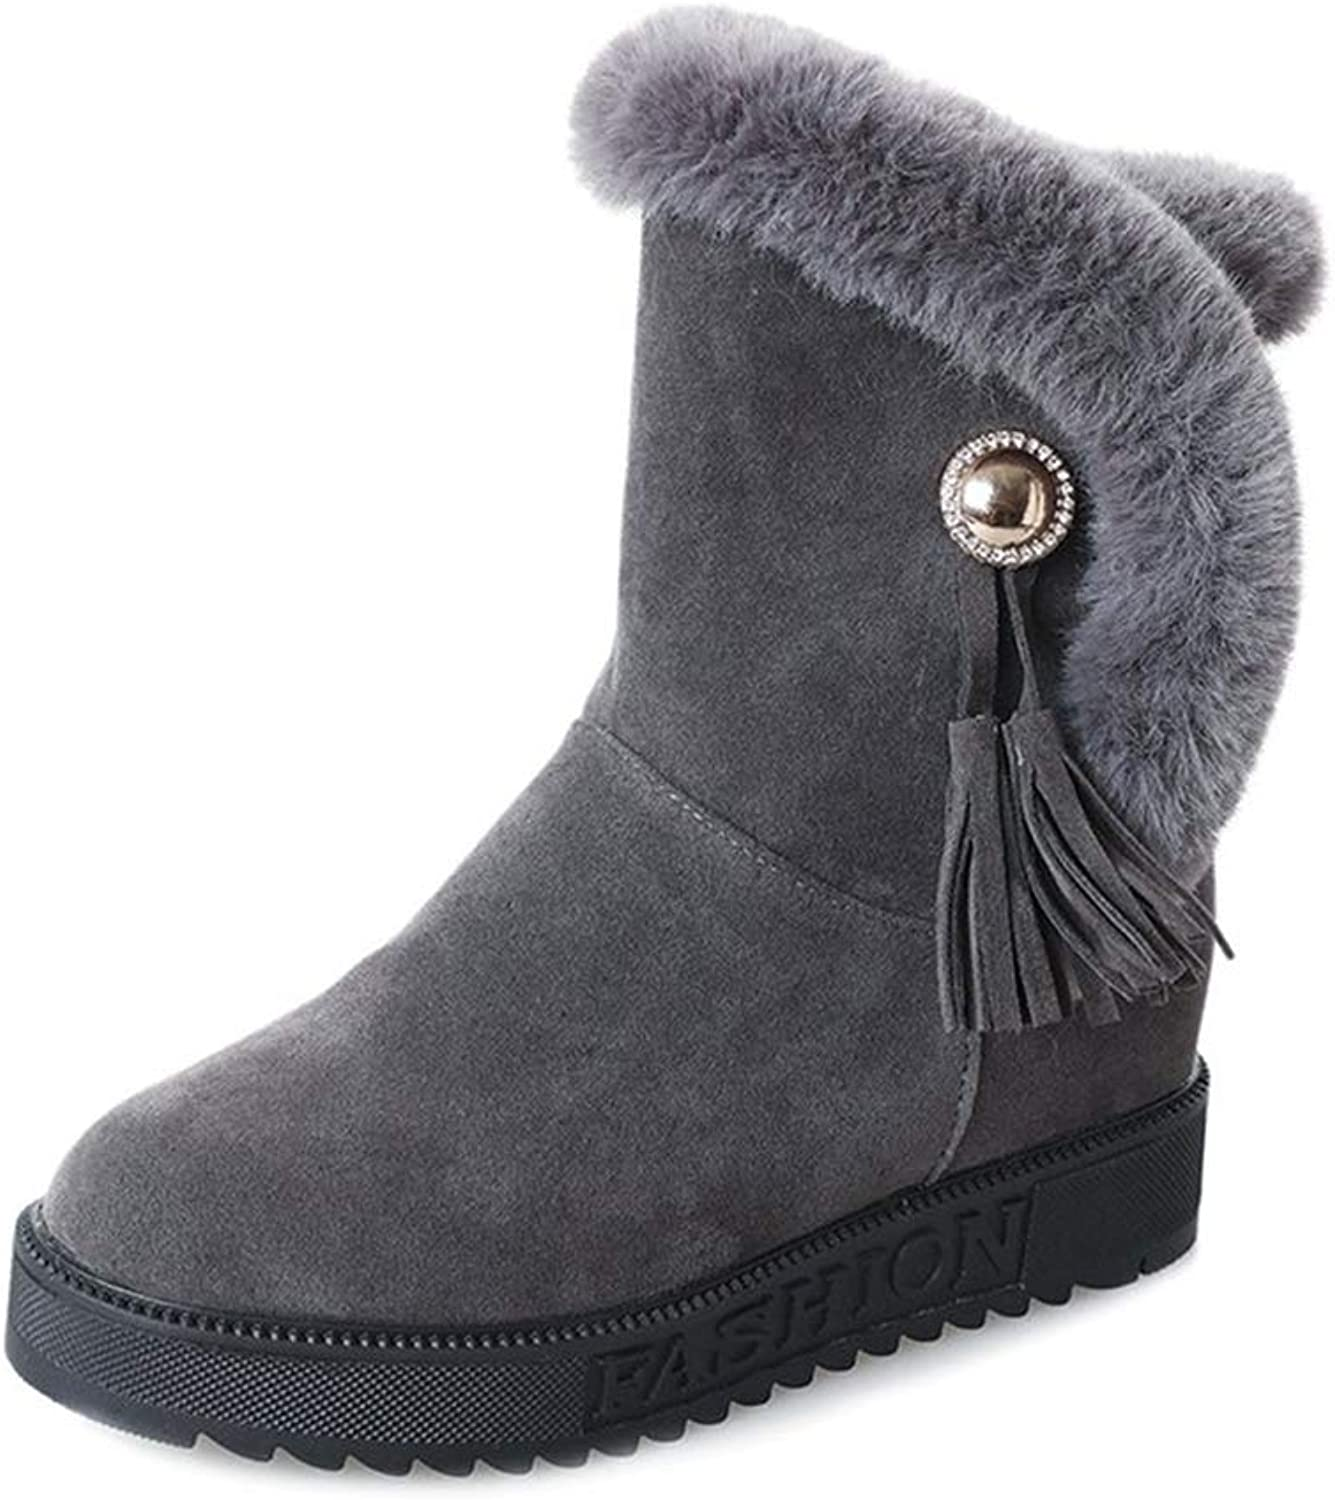 SANOMY Furry Ankle Snow Boots for Women Metal Fringe Flat Low Heels Witer Warm Plush Chelsea Booties